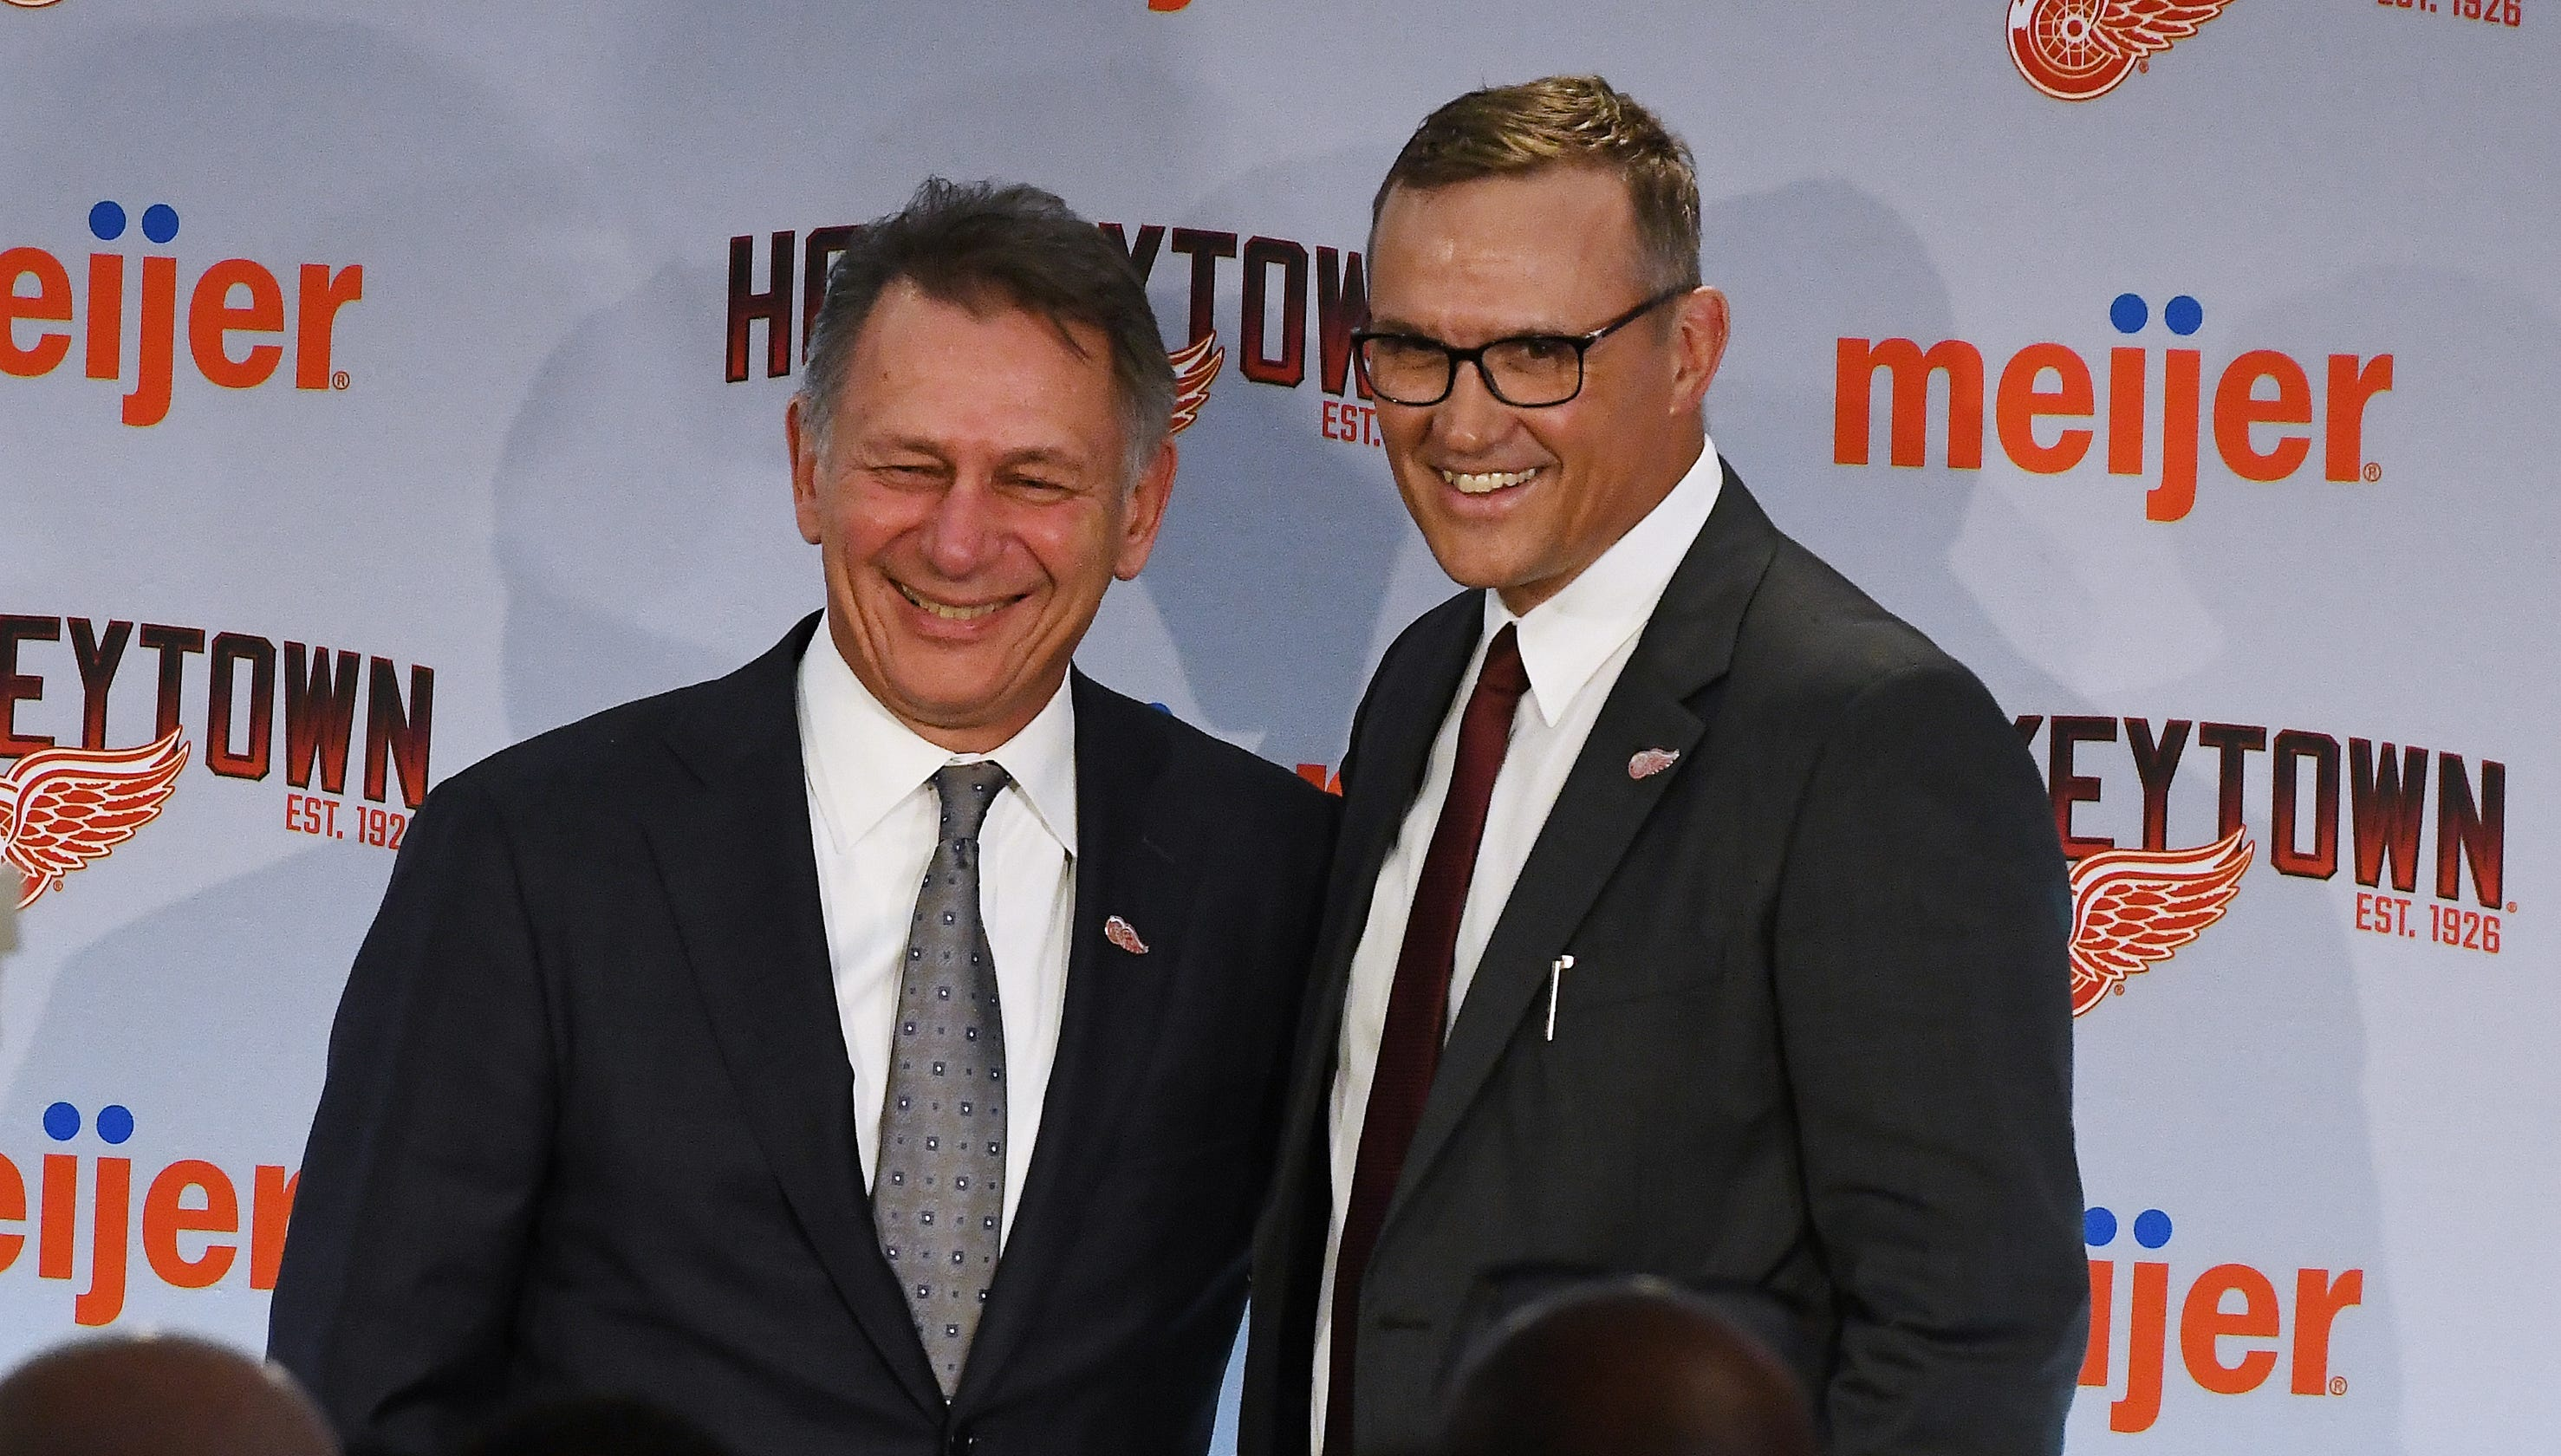 Holland praised for selflessness moving aside for Yzerman's